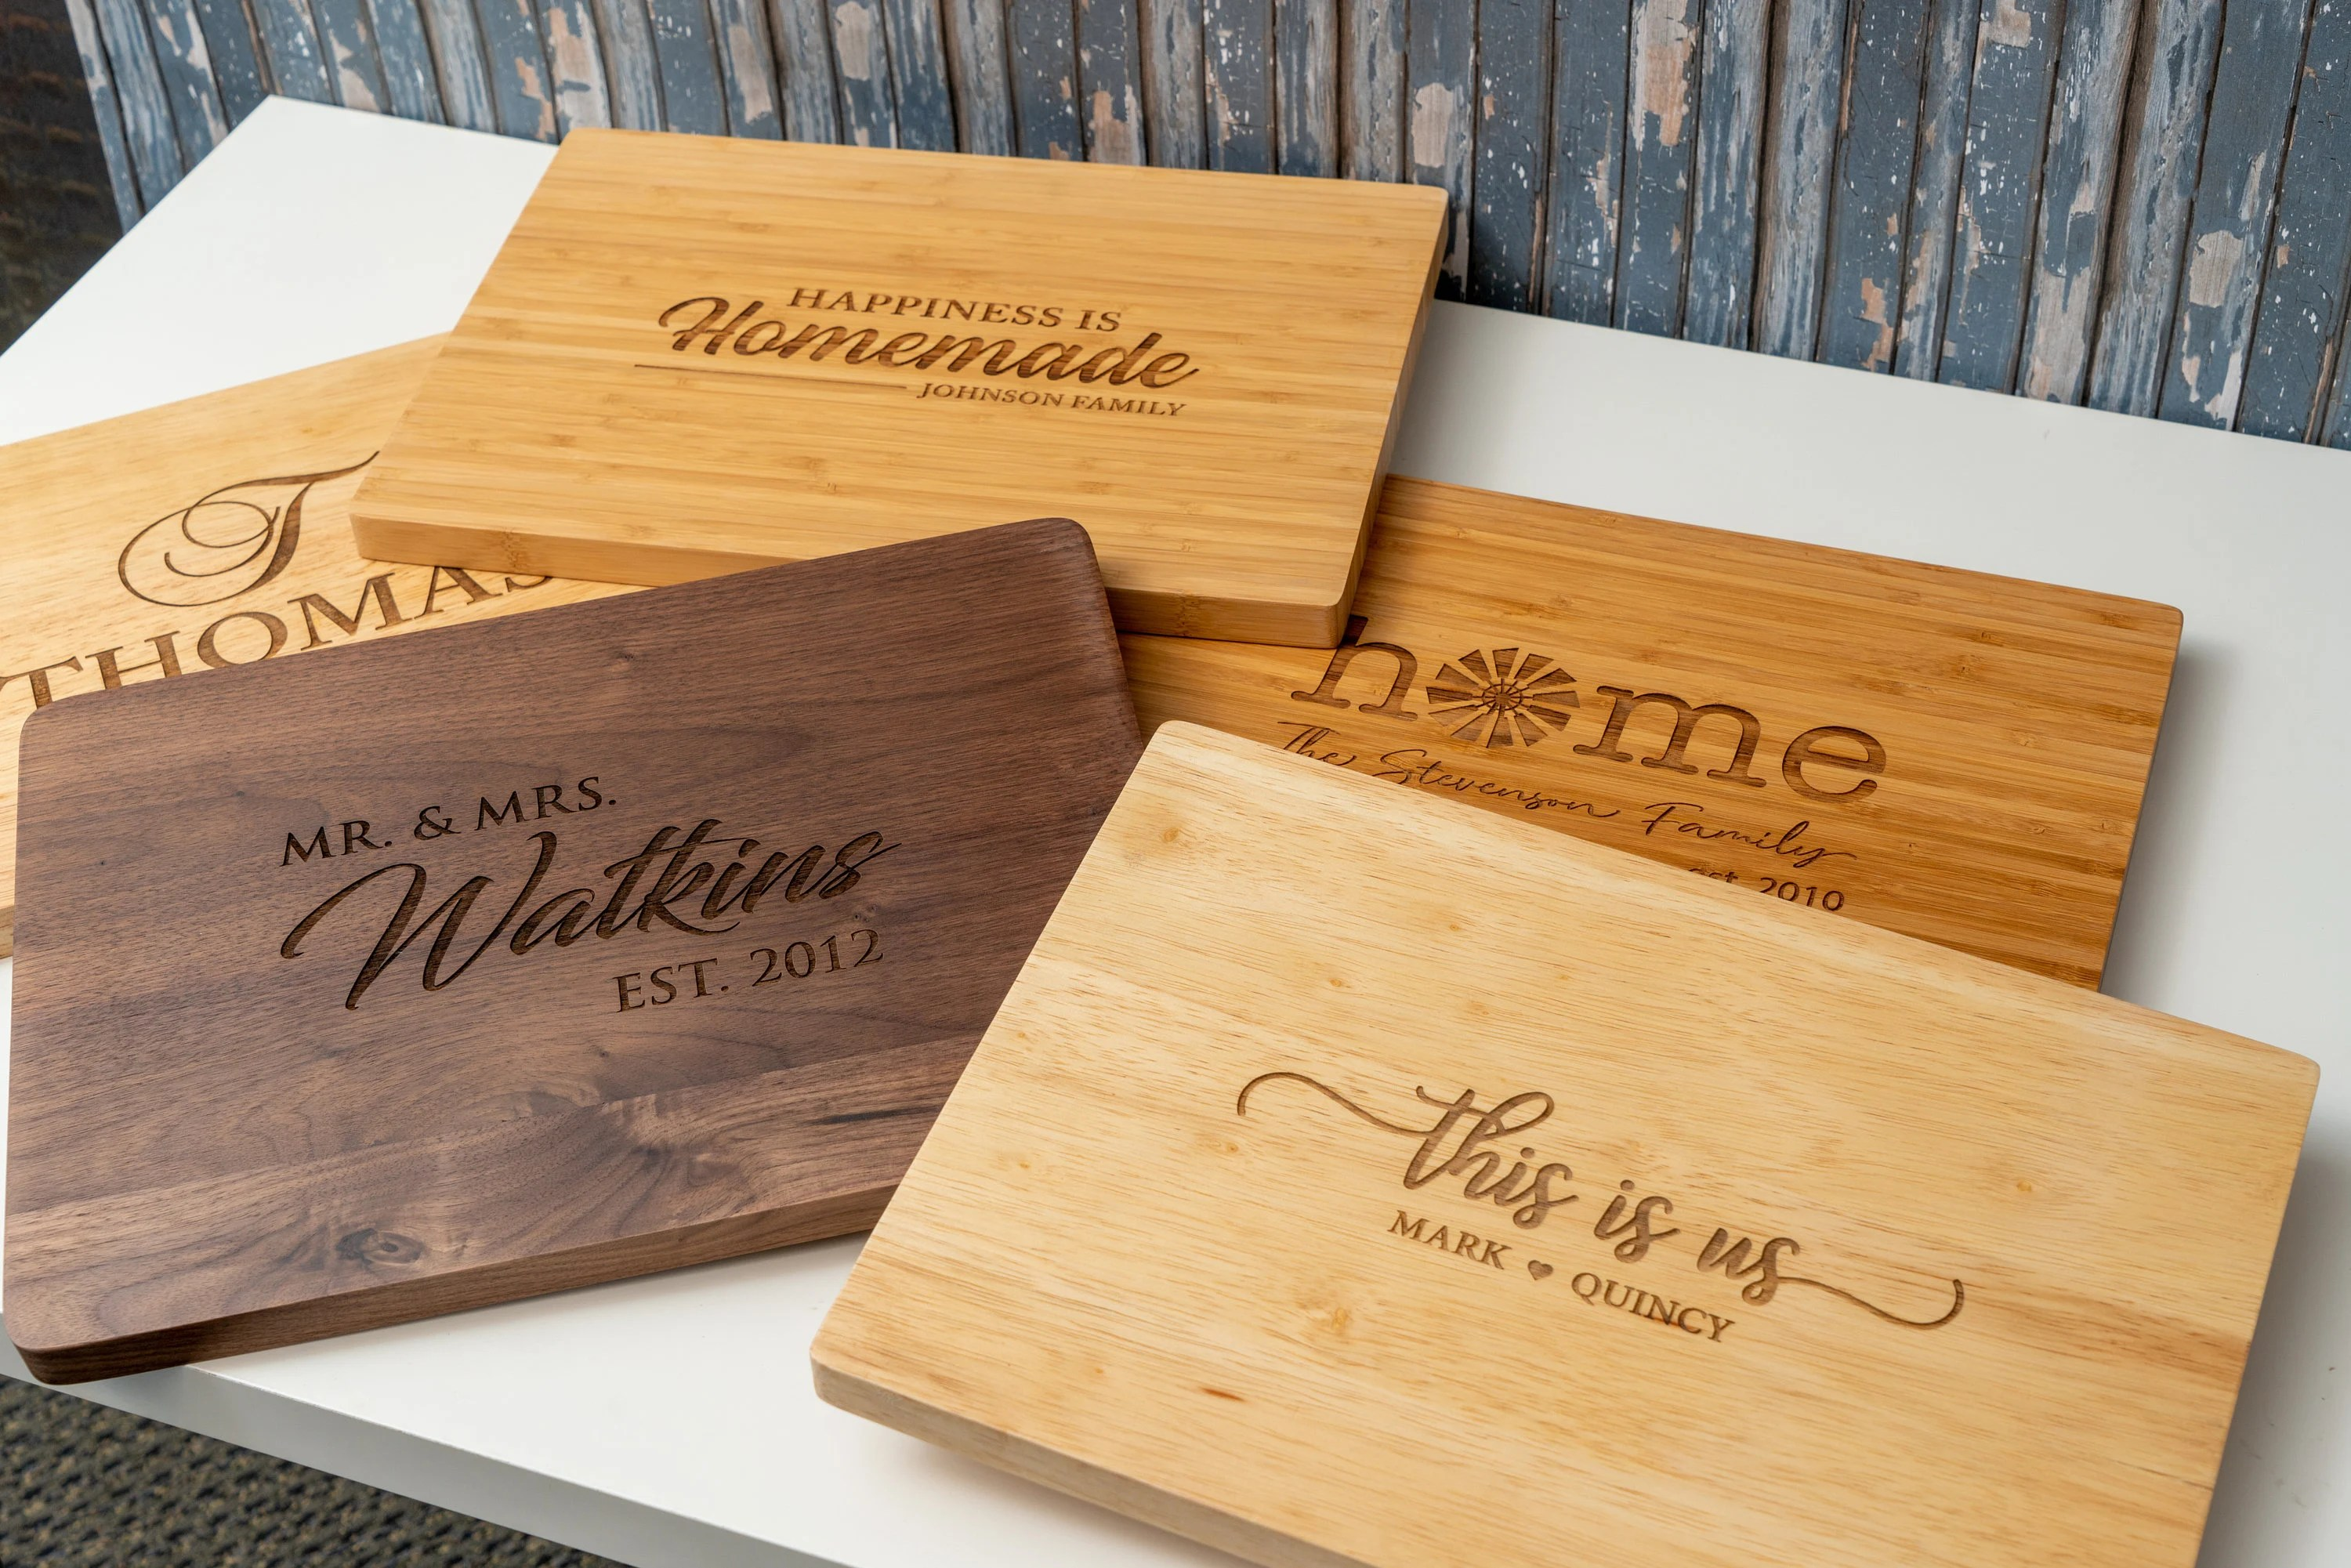 Personalized Cutting Board Engraved Cutting Board Kitchen image 1